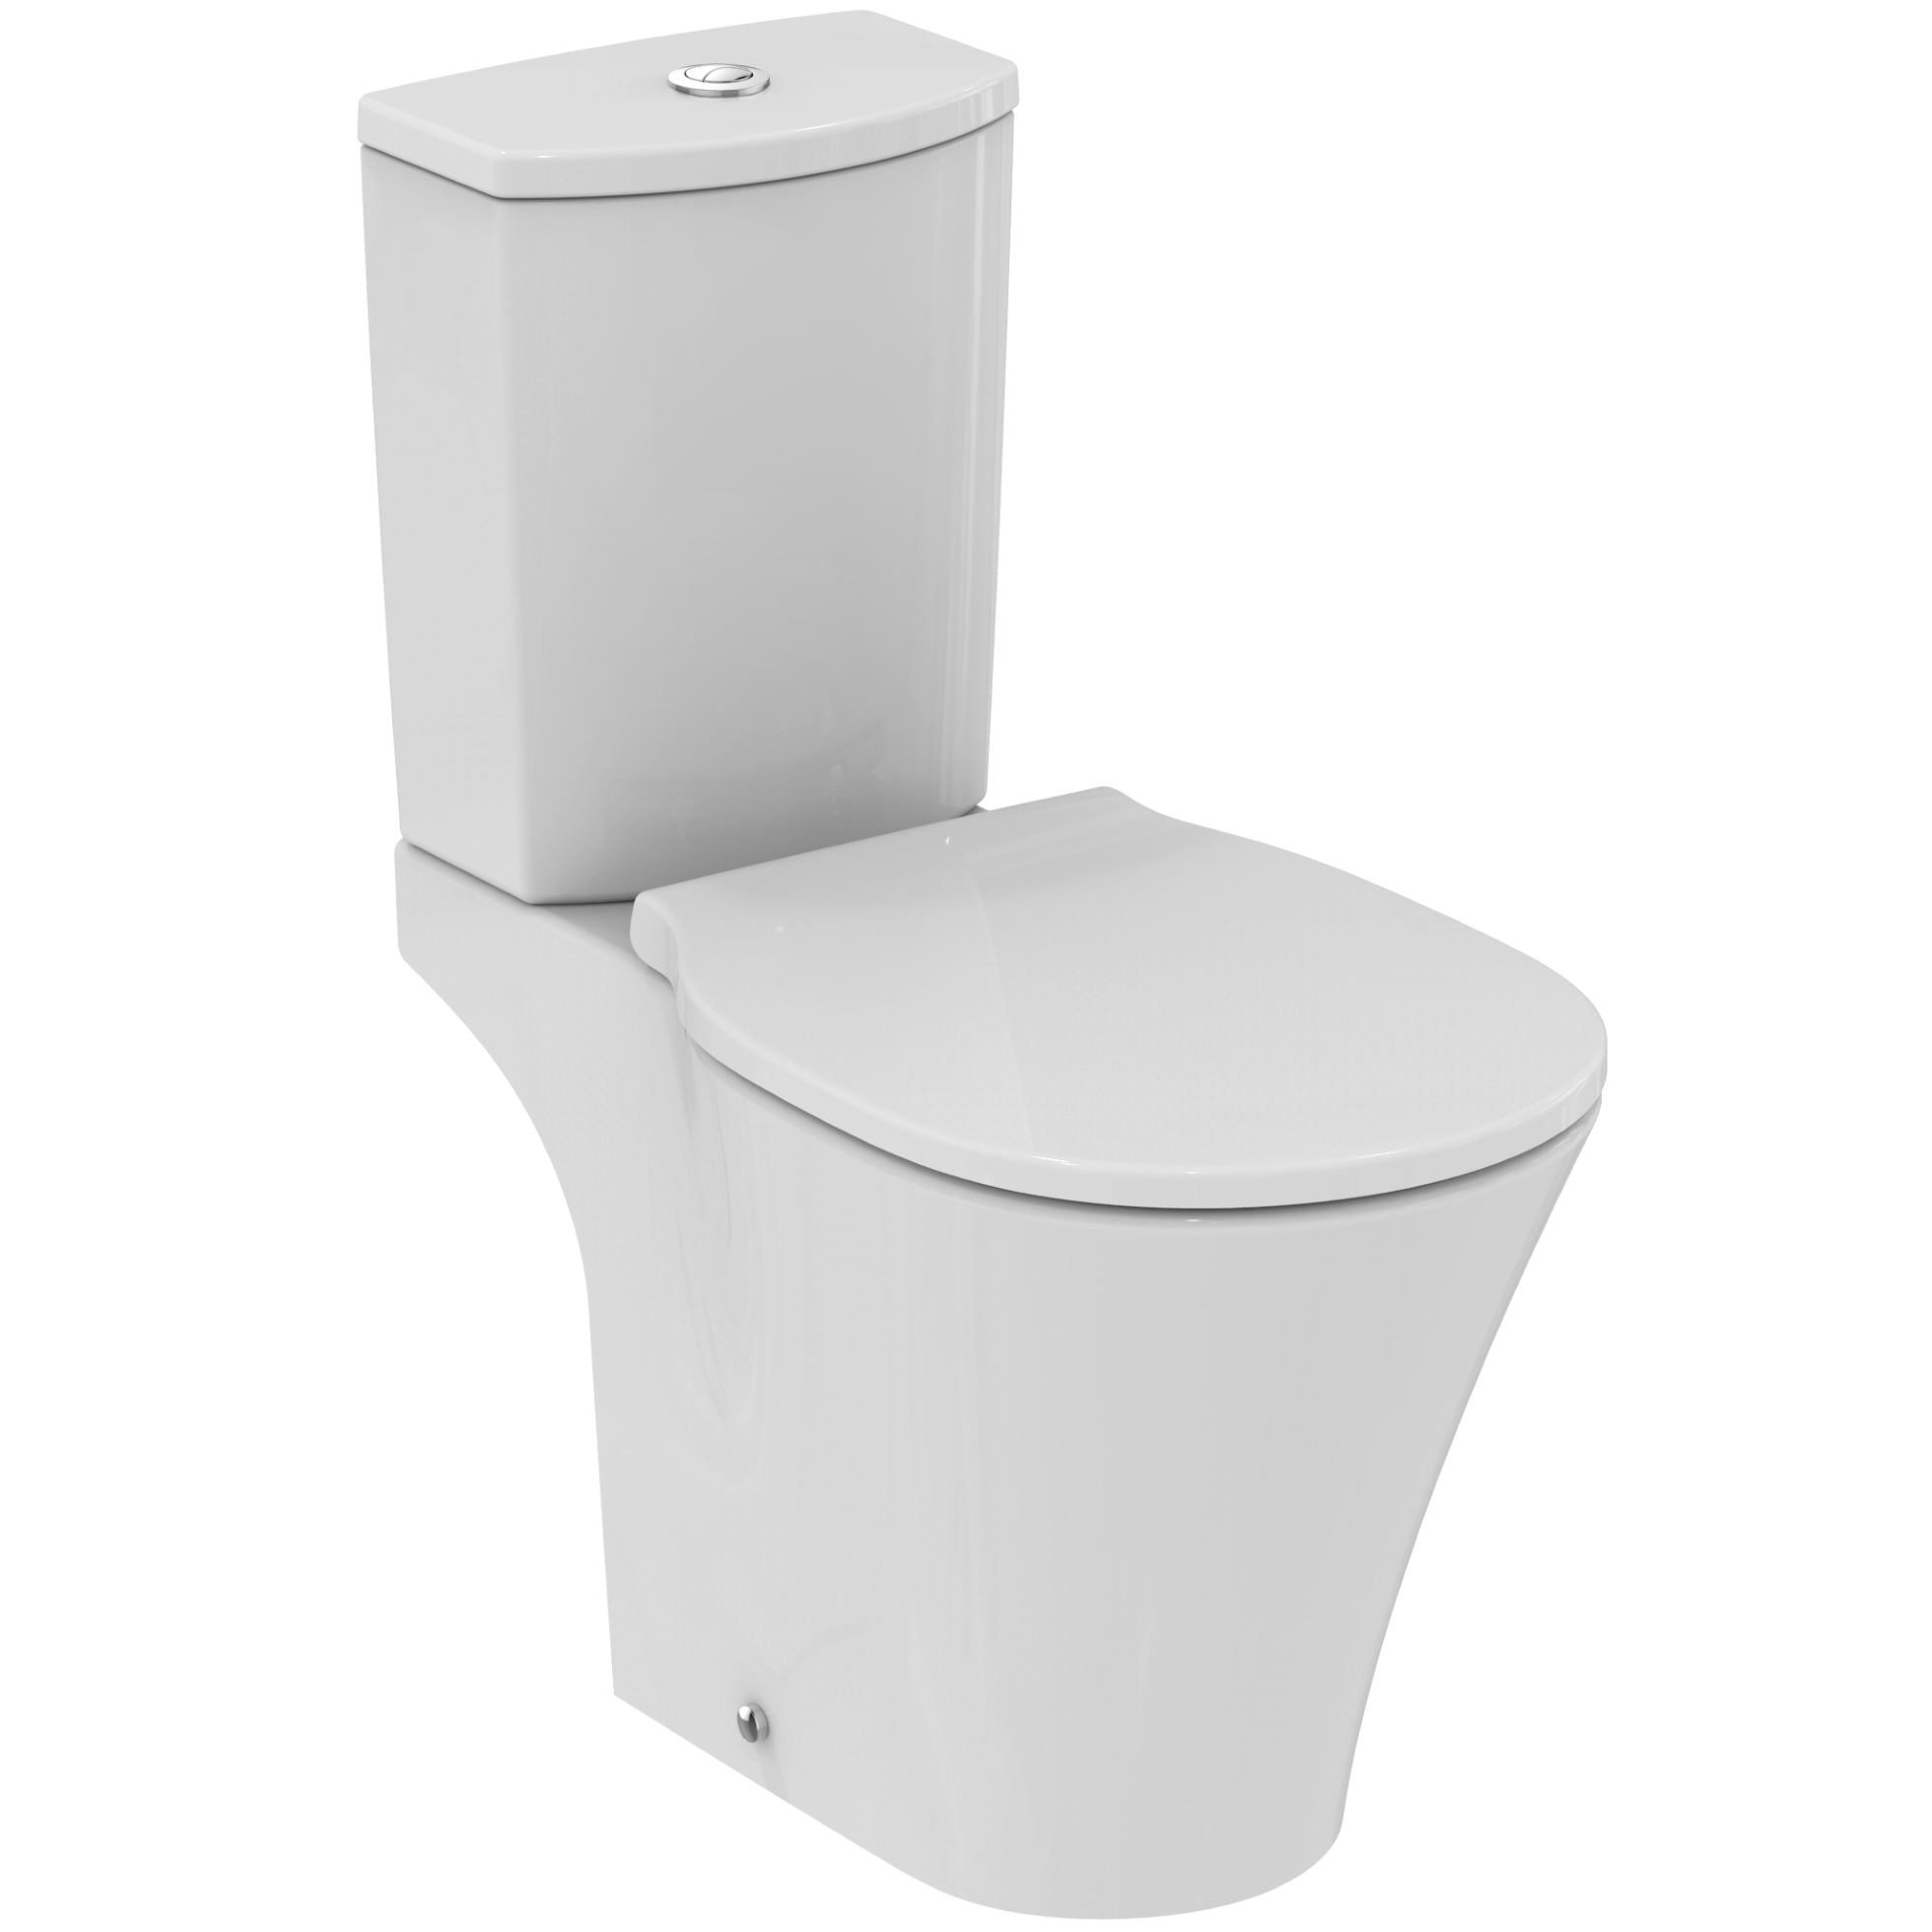 Ideal Standard Vaso Connect.Ideal Standard Connect Air Floorstanding Washdown Toilet With Aquablade Xtwostore